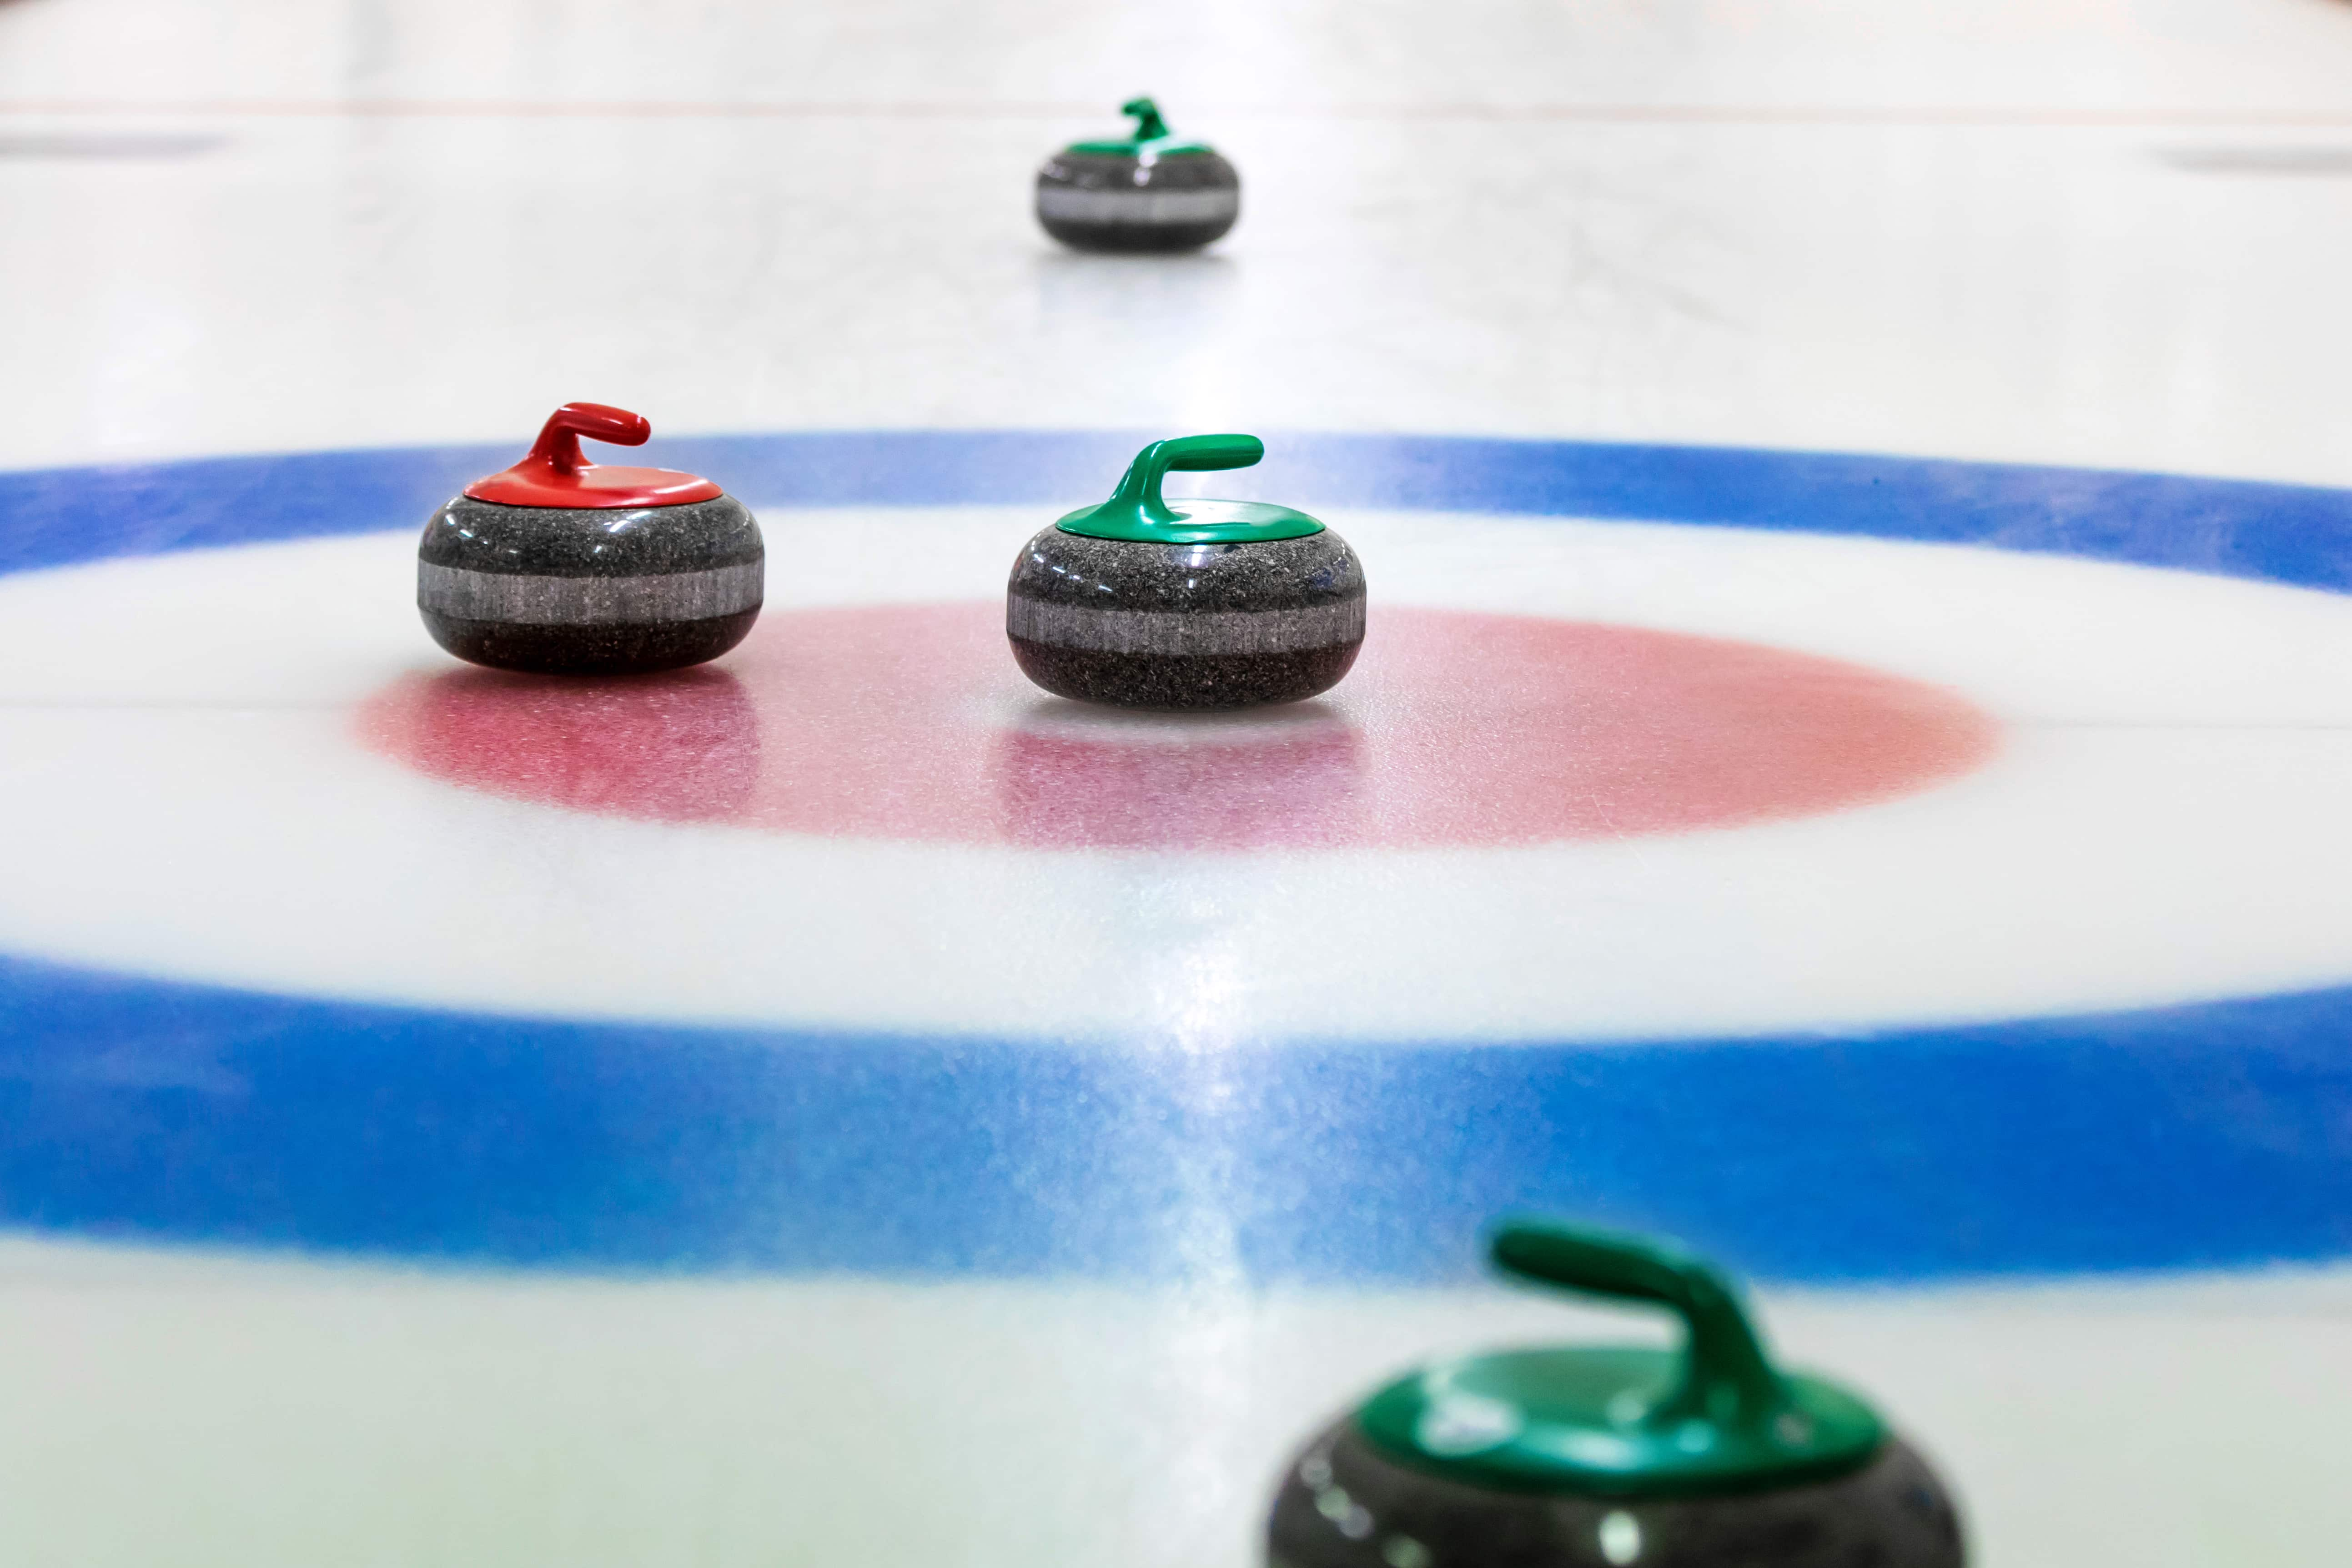 four curling stones are seen on a curling field, with one in the center of the target